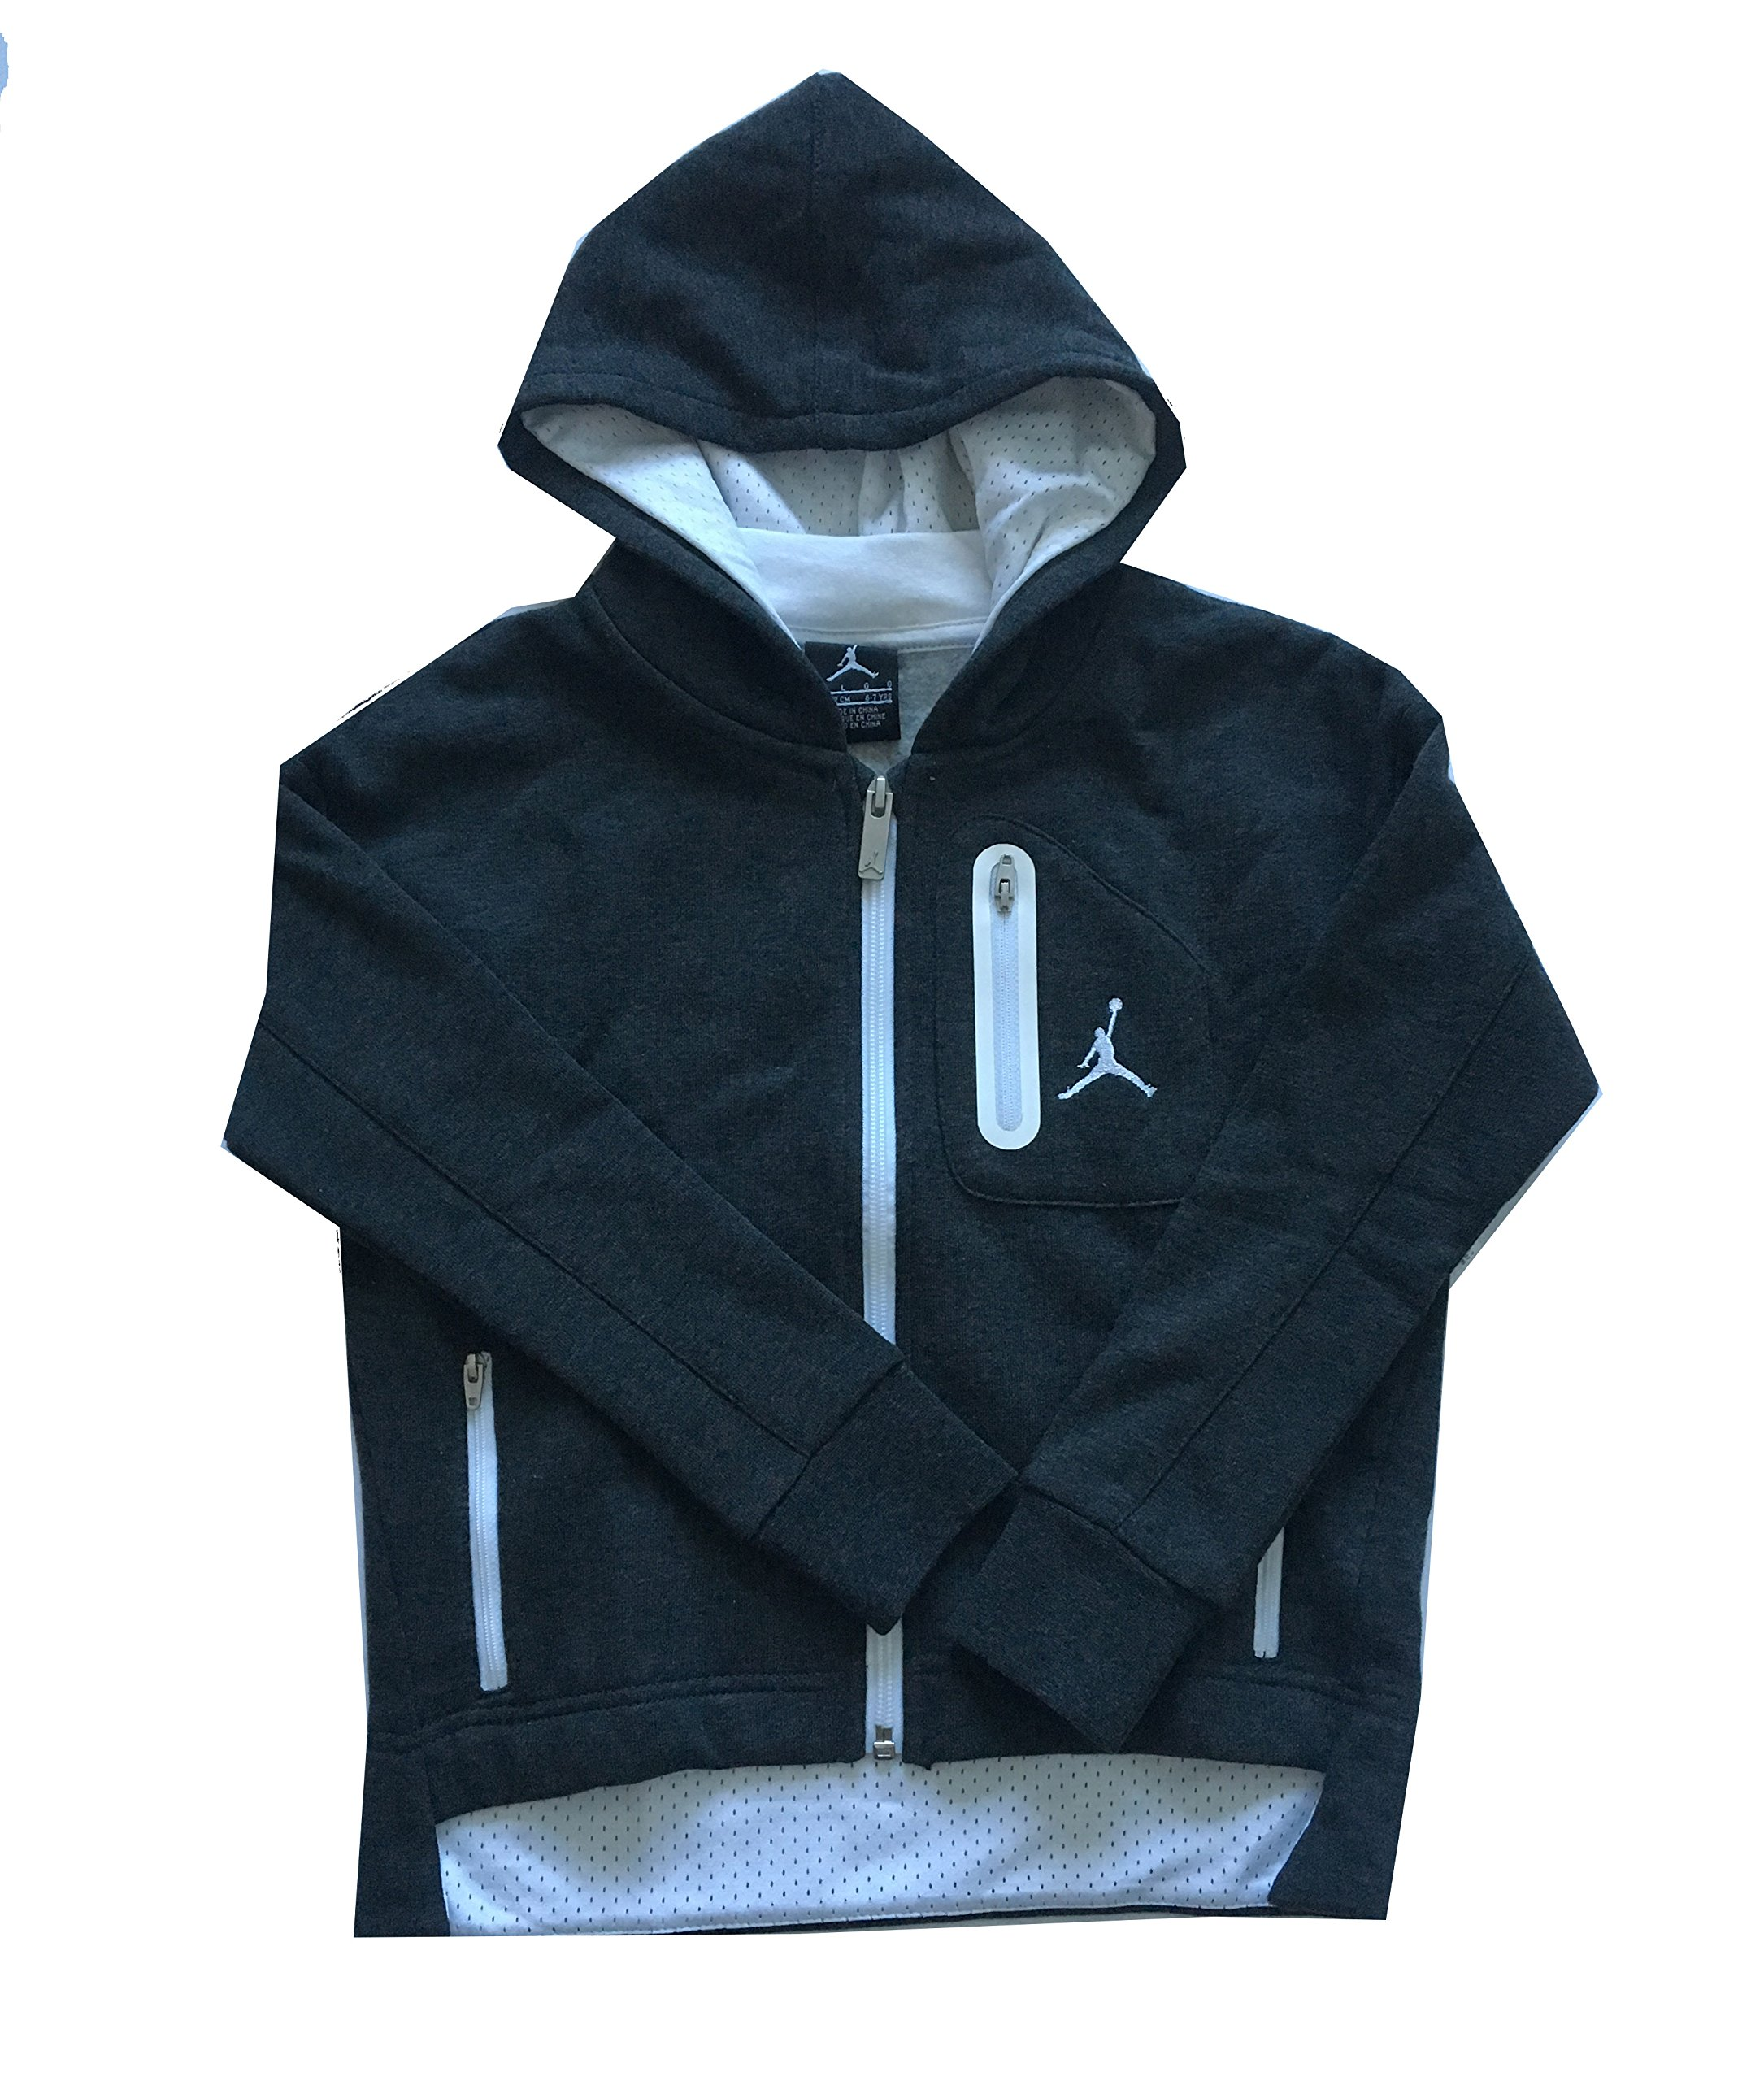 Air Jordan Little Girls Hoodie Black Heather/White Size 5